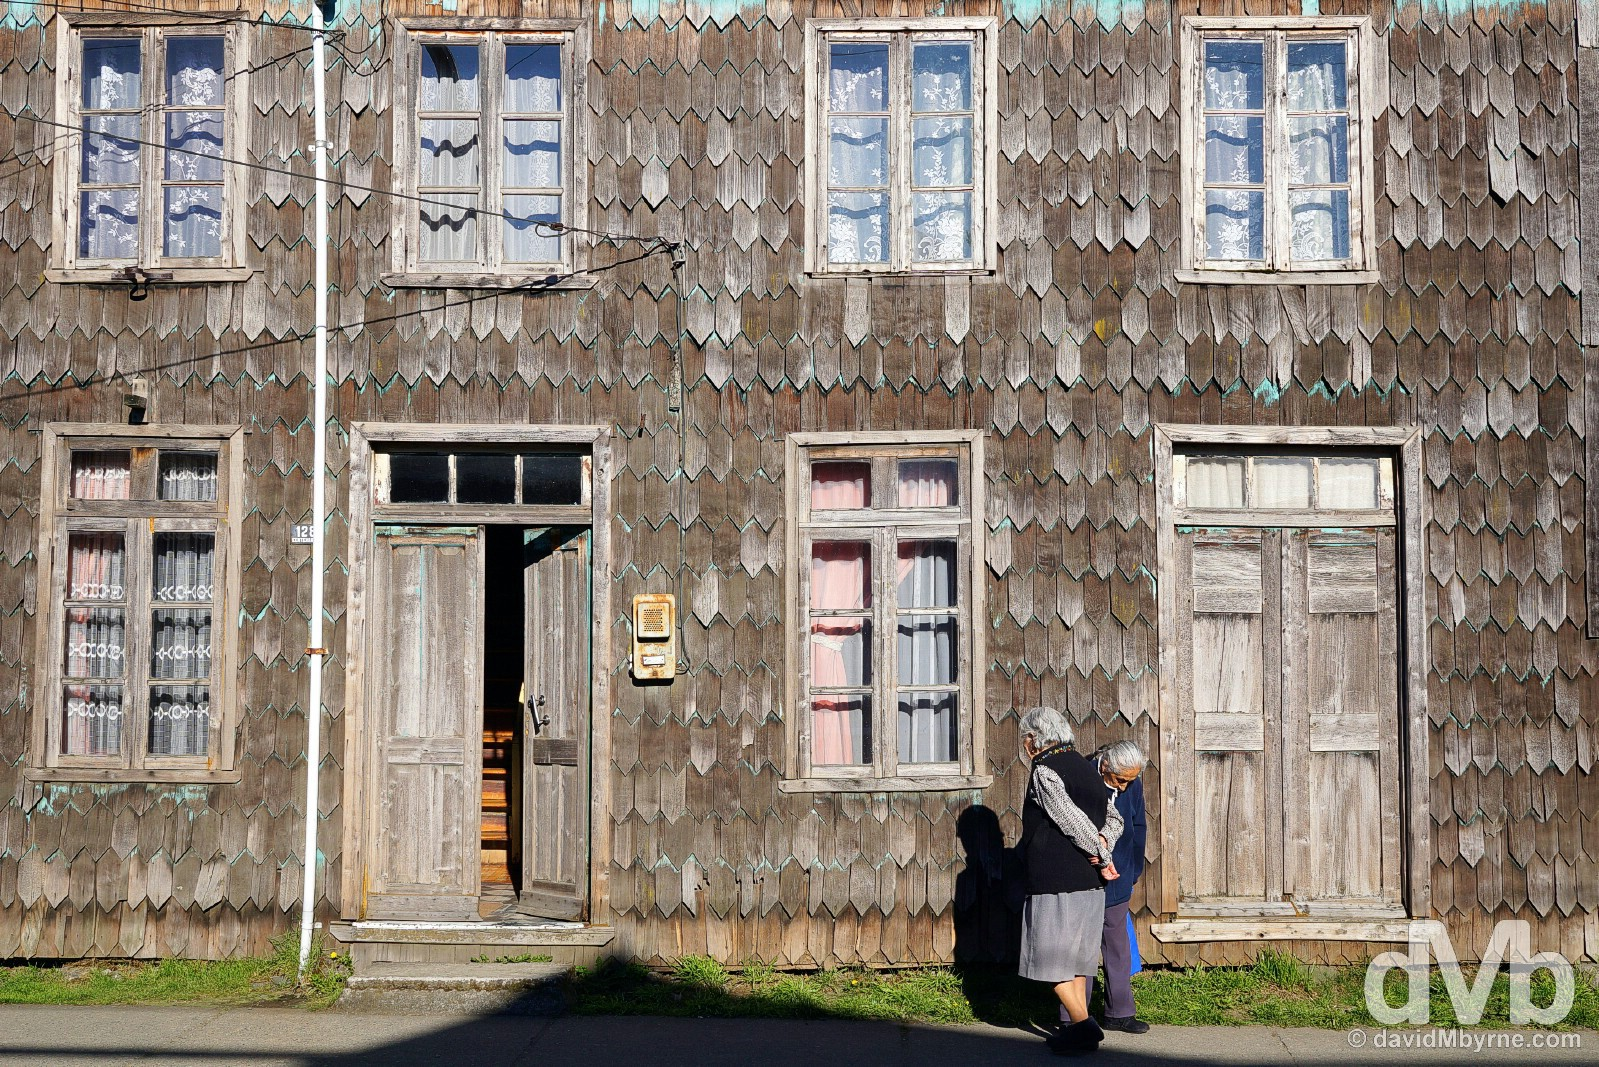 Shingles & shadows. Conchi, Chiloe, Chile. October 22, 2015.